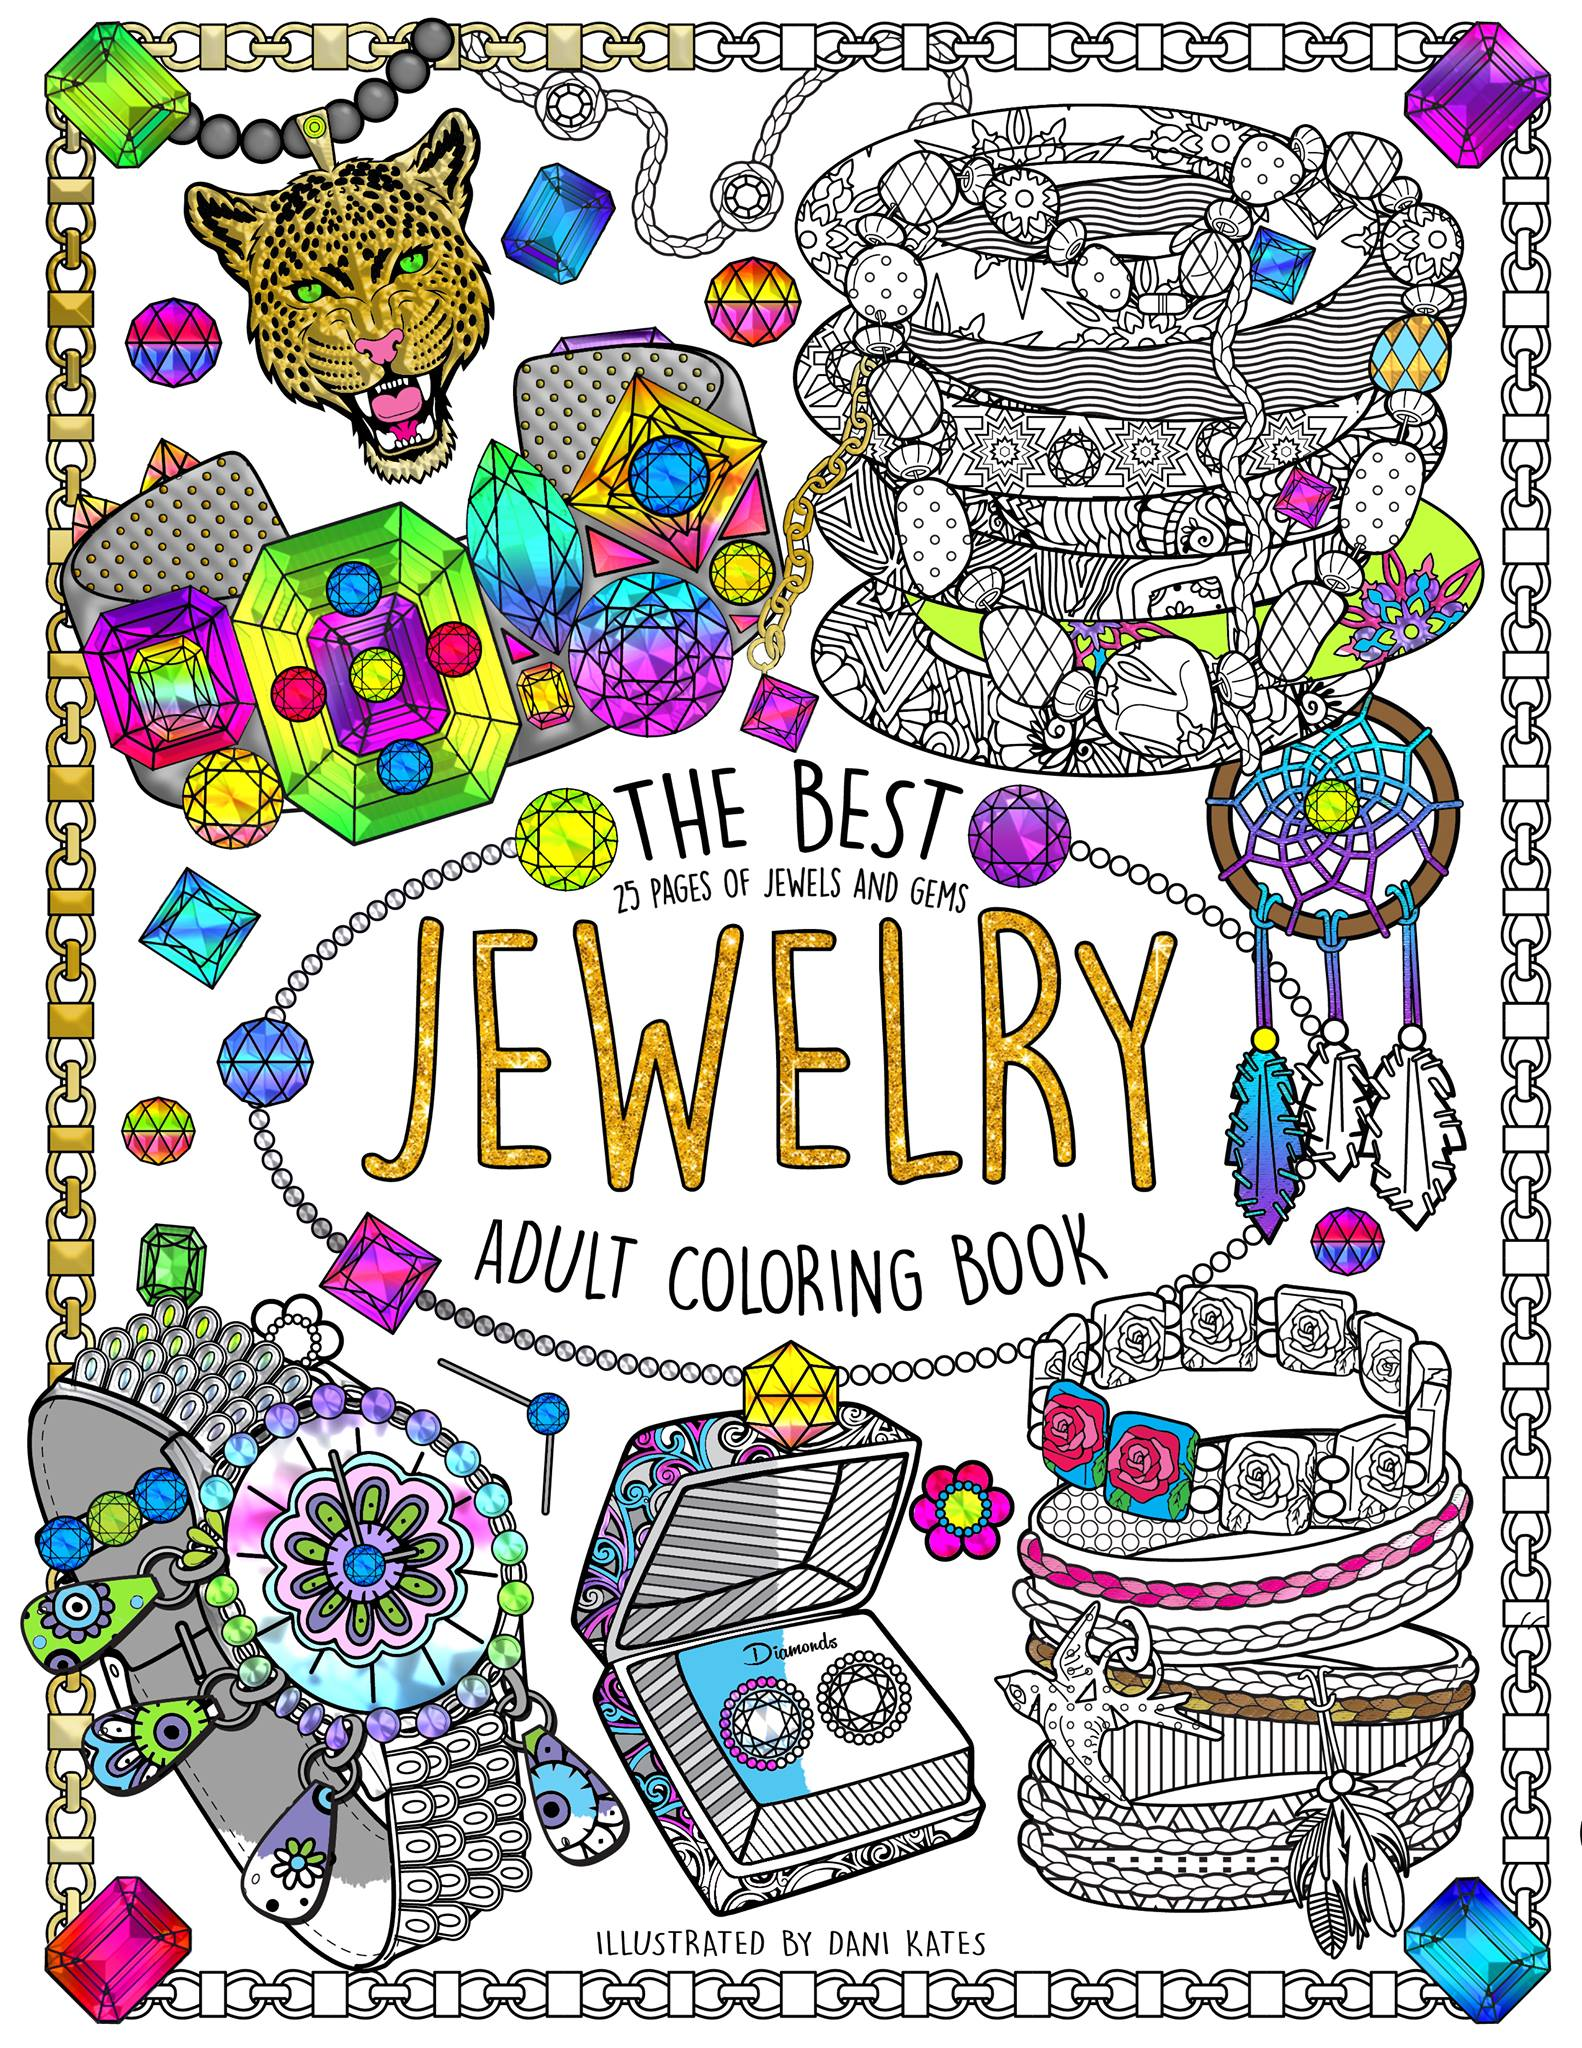 Couverture du livre 'The Best Jewelry Adult coloring book', disponible ici